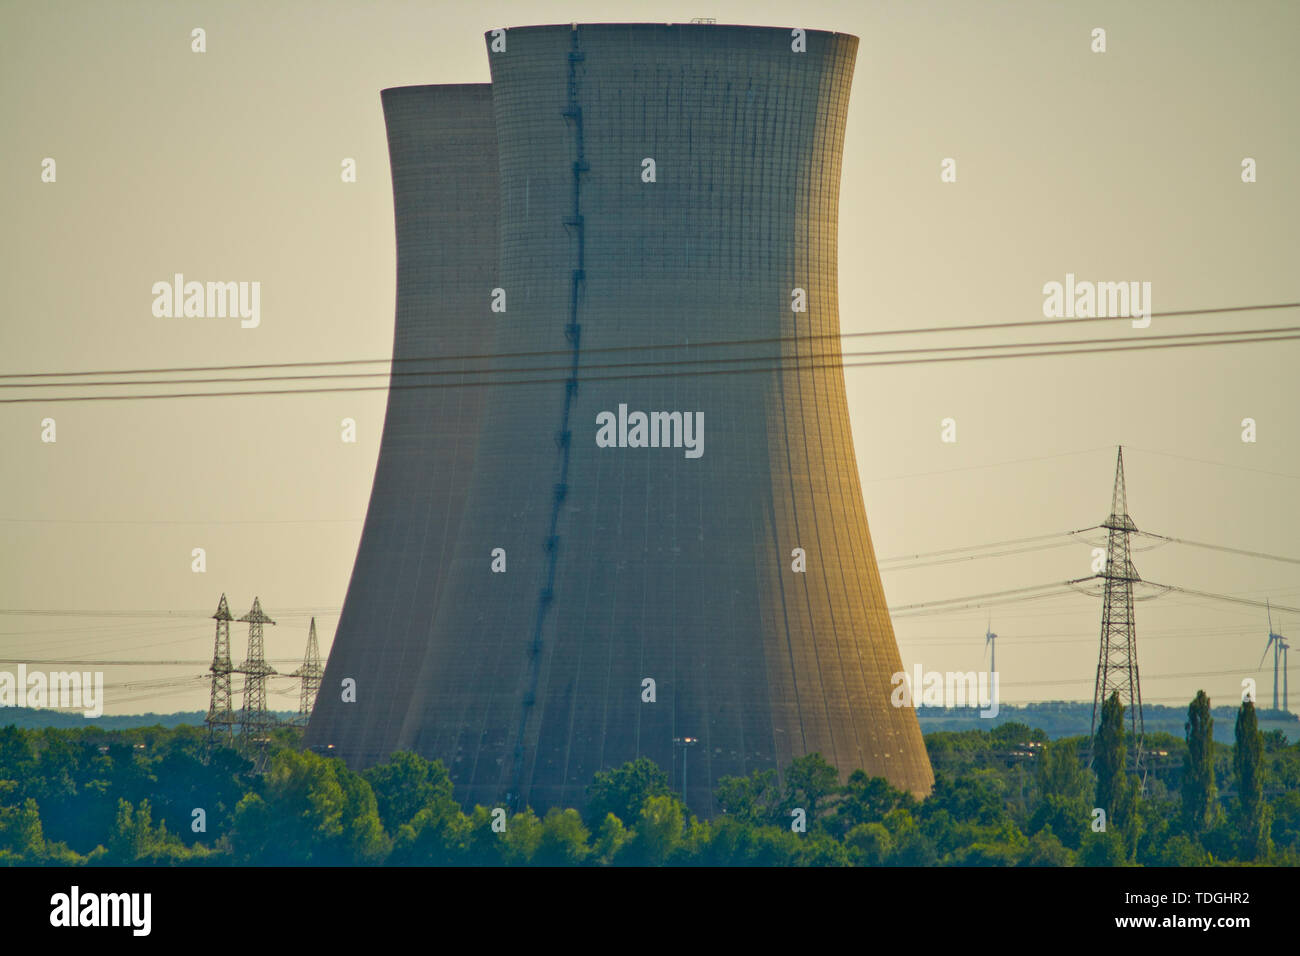 Cooling towers of nuclear power plant - Stock Image